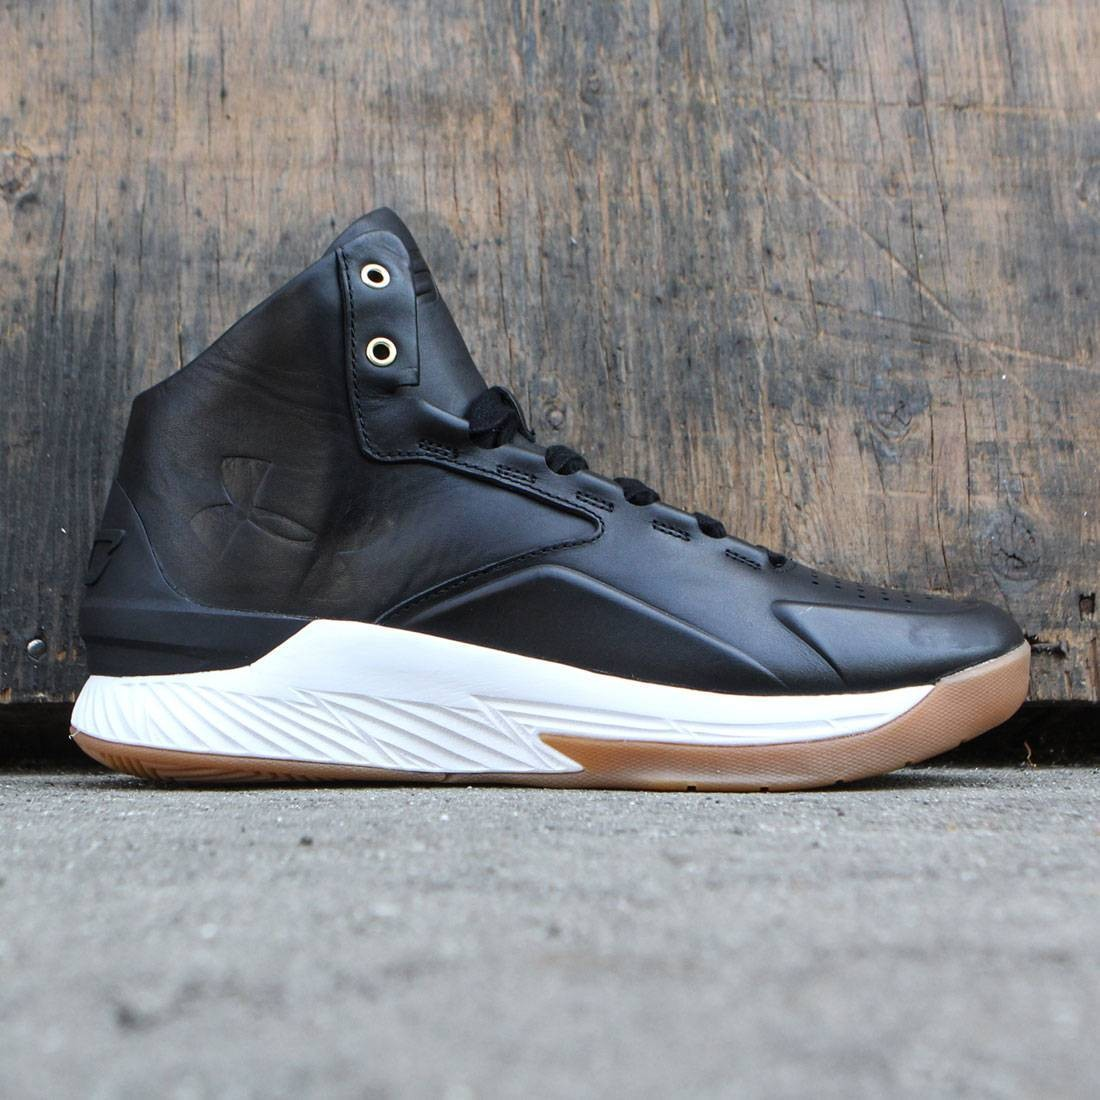 e692a88f Under Armour x Steph Curry Men Curry 1 Mid Alpha Leather - Curry Lux Pack  black stone